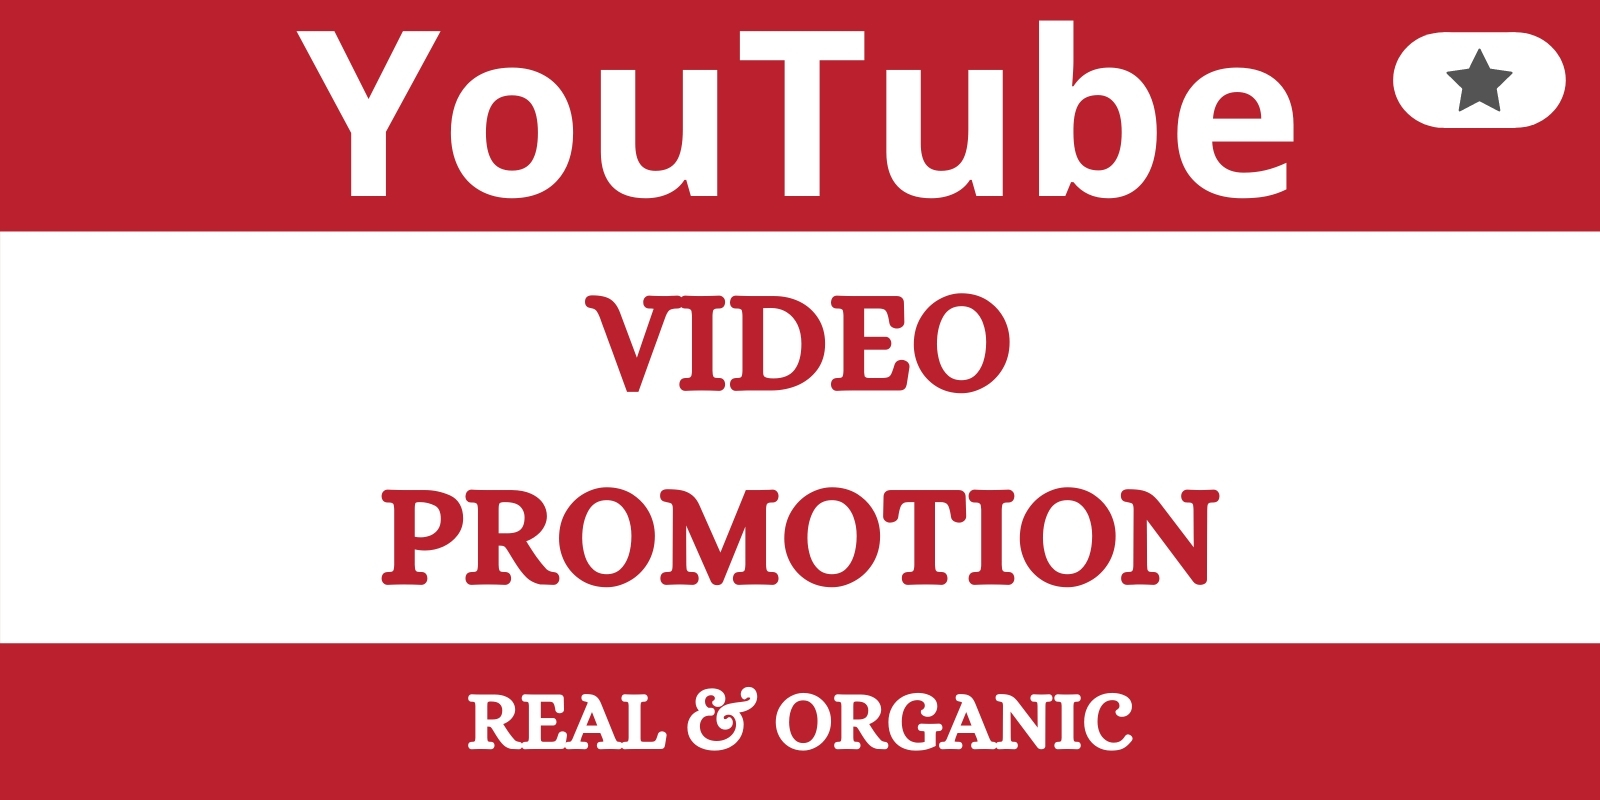 Organic YouTube video promotion service